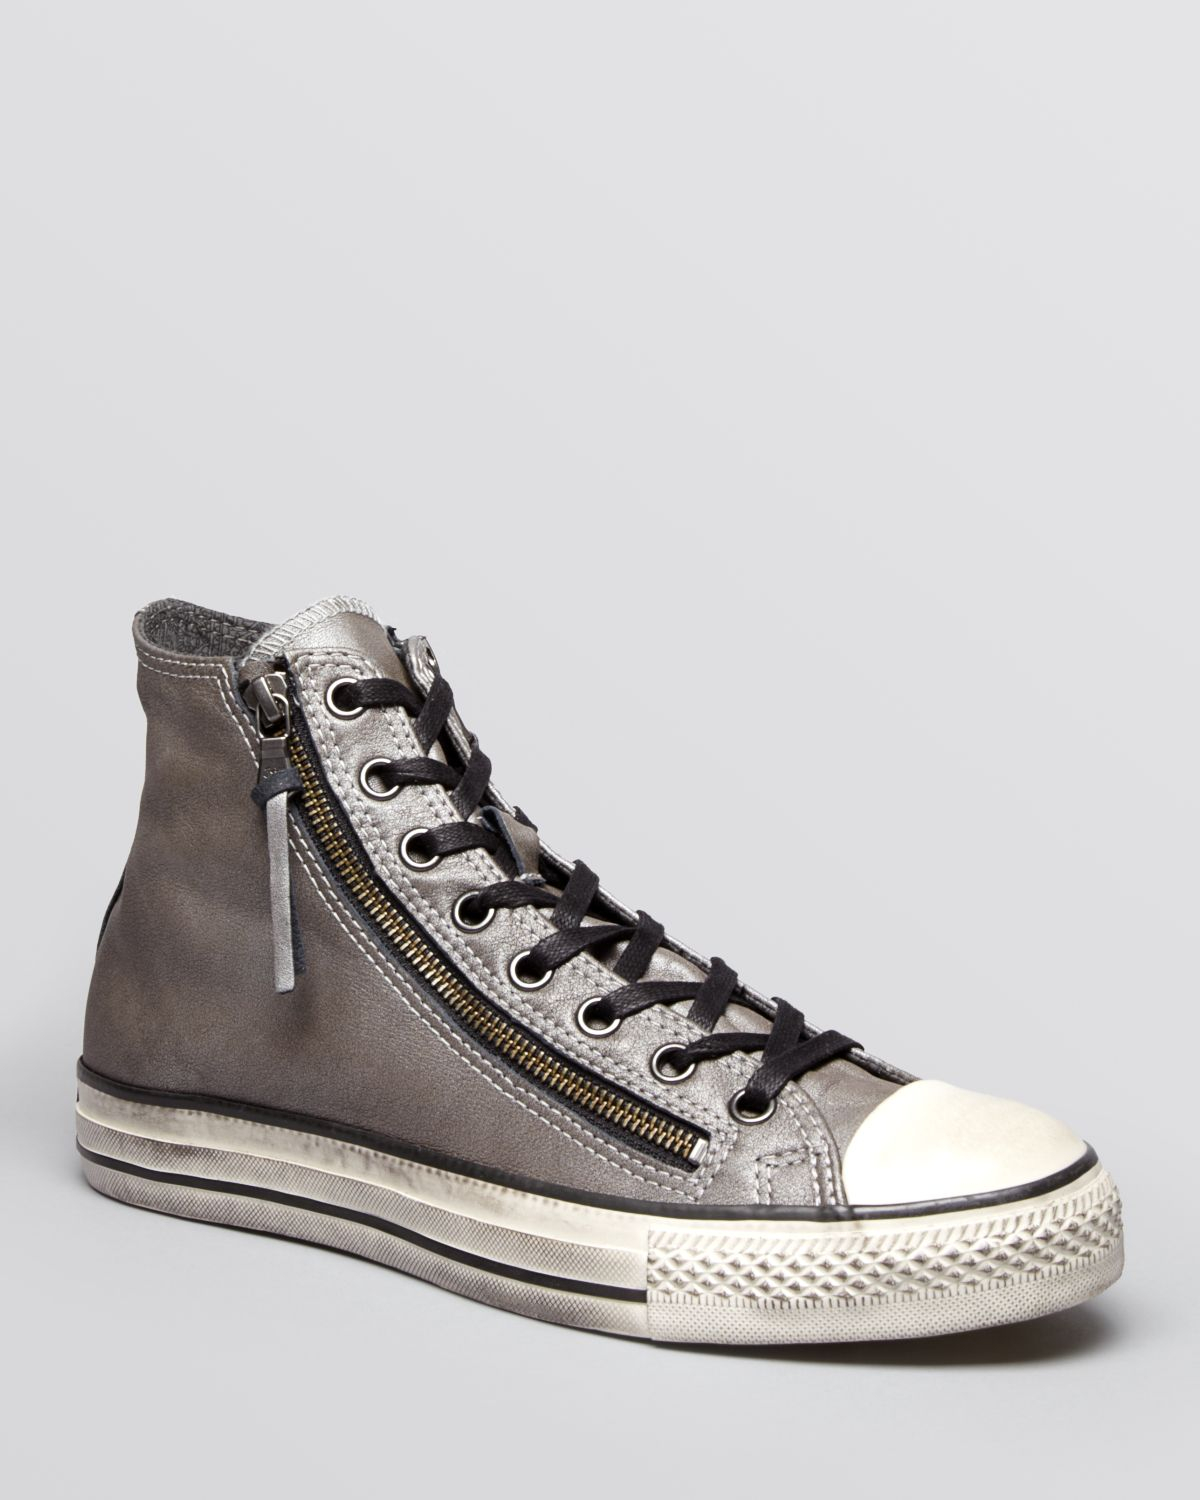 5e326f011534 Gallery. Previously sold at  Bloomingdale s · Men s John Varvatos Converse  ...